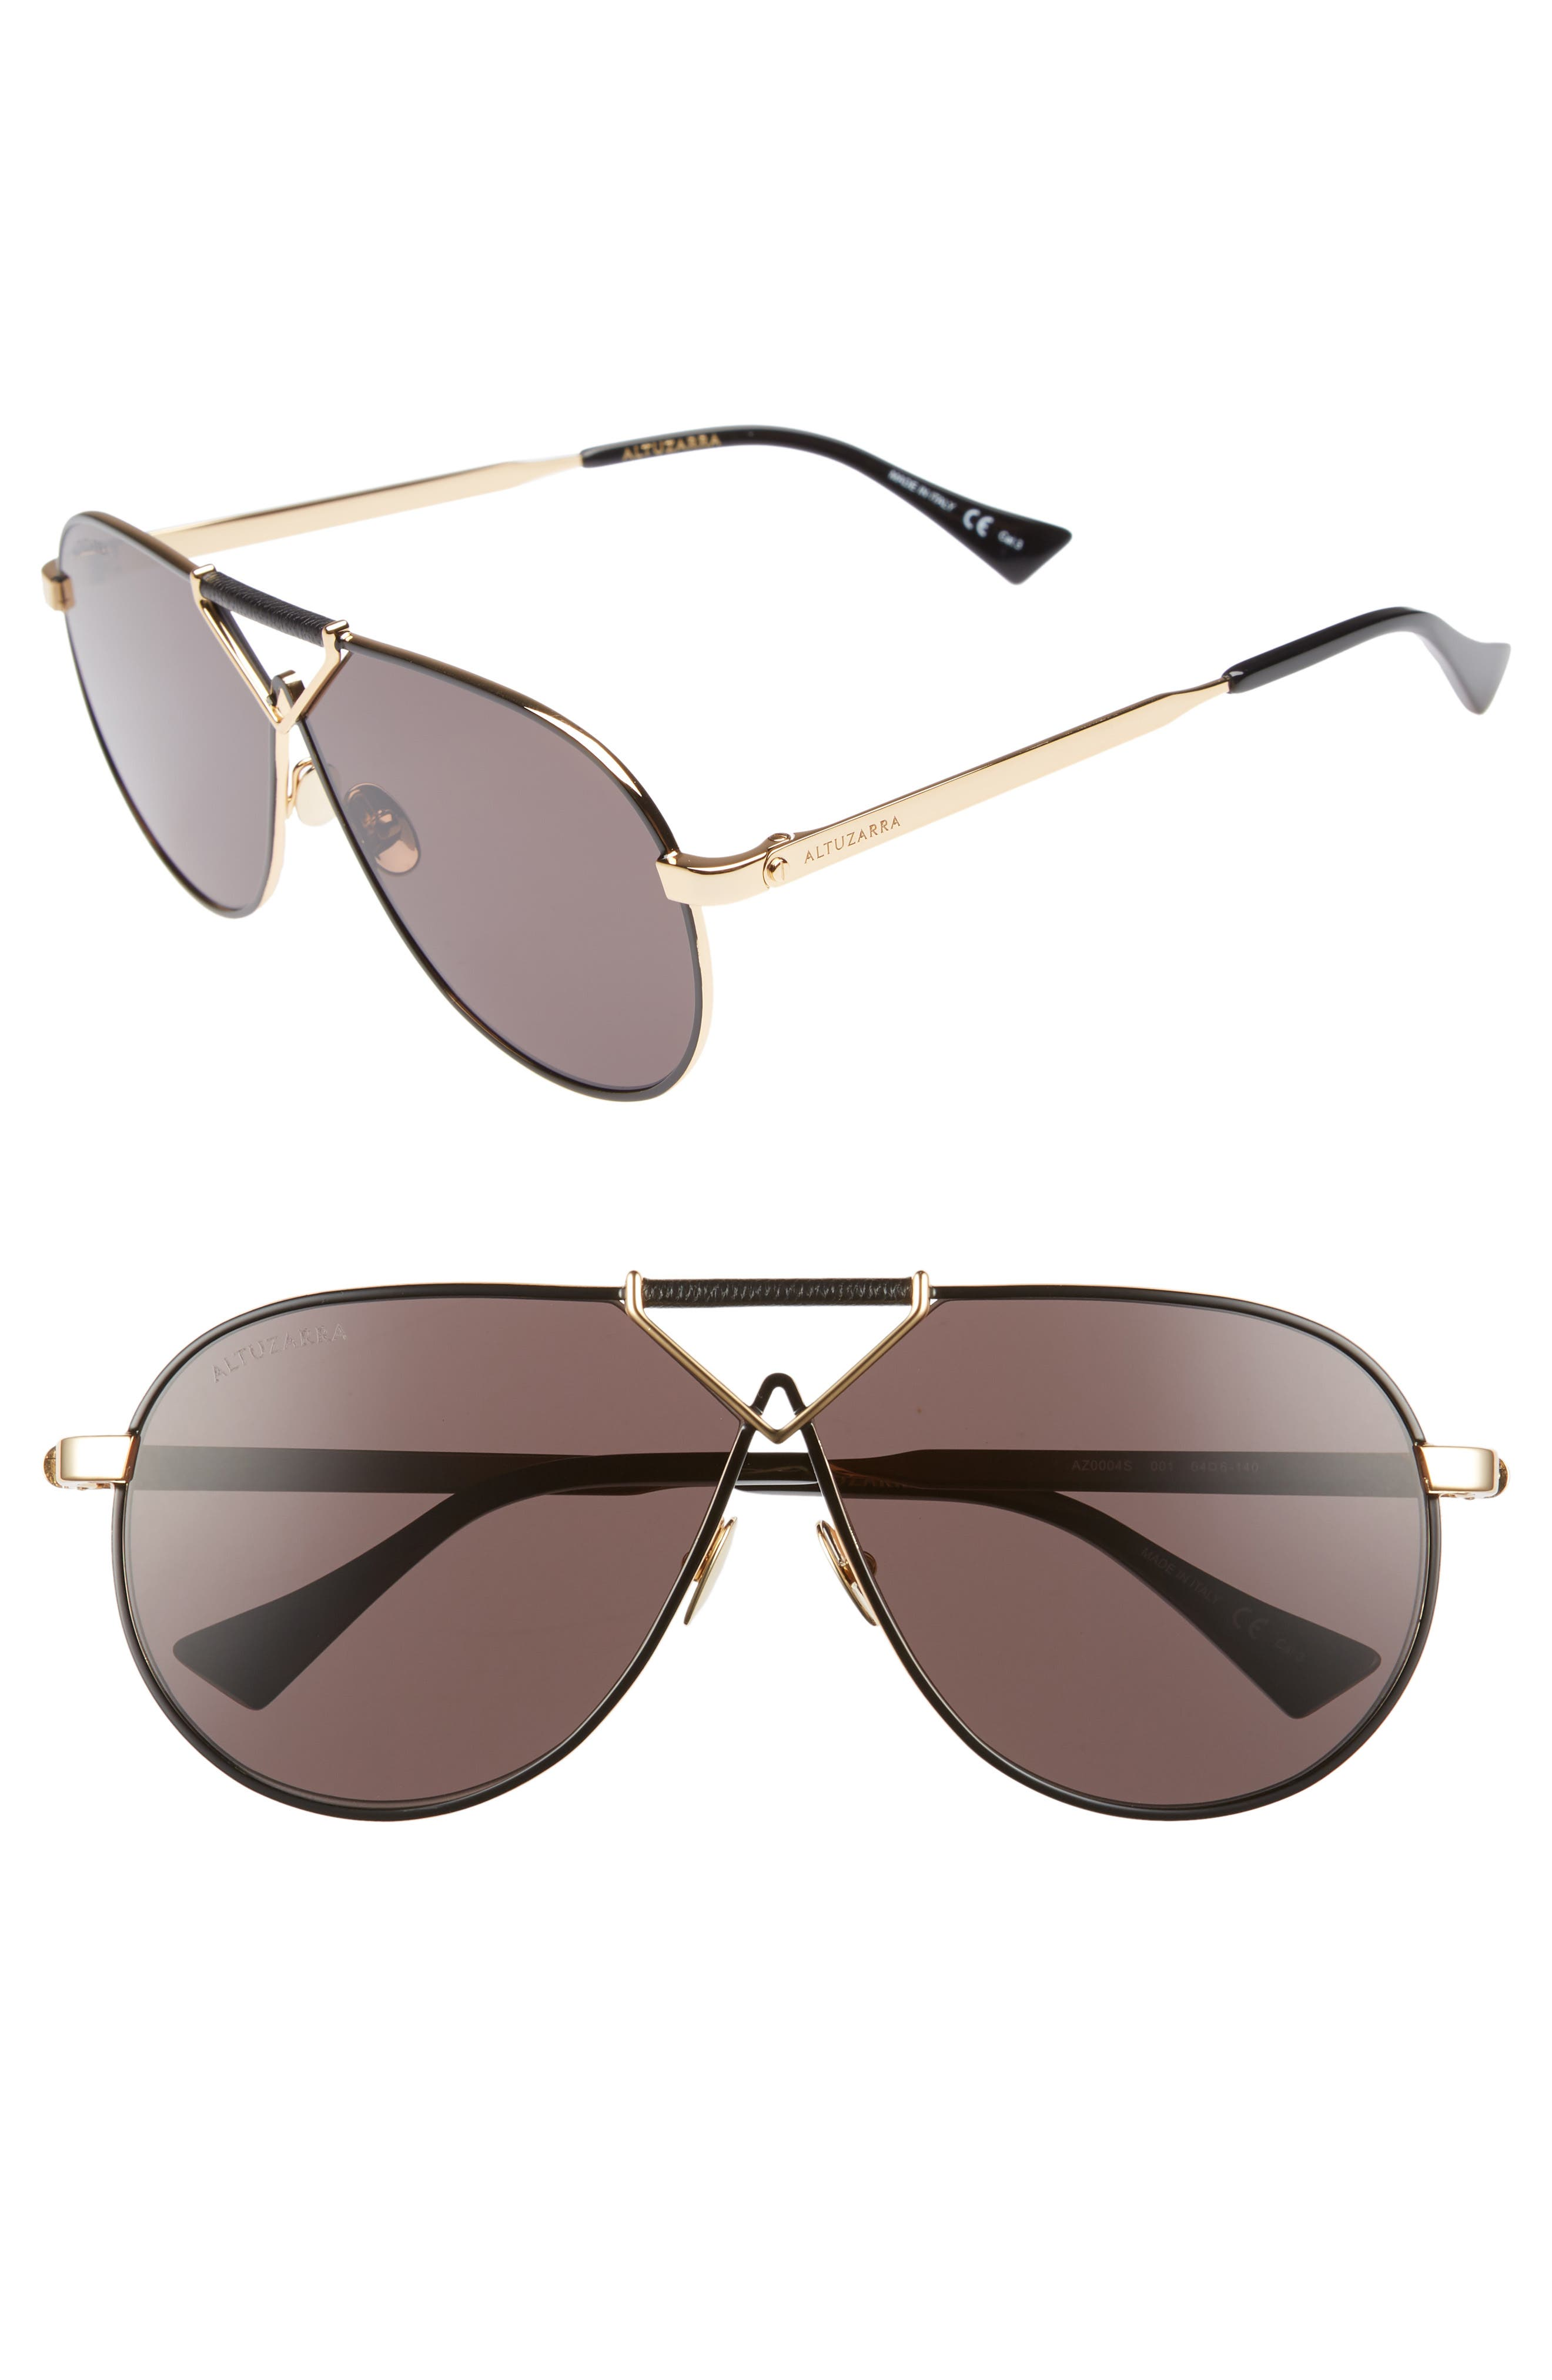 ALTUZARRA,                             64mm Aviator Sunglasses,                             Main thumbnail 1, color,                             BLACK/ GOLD